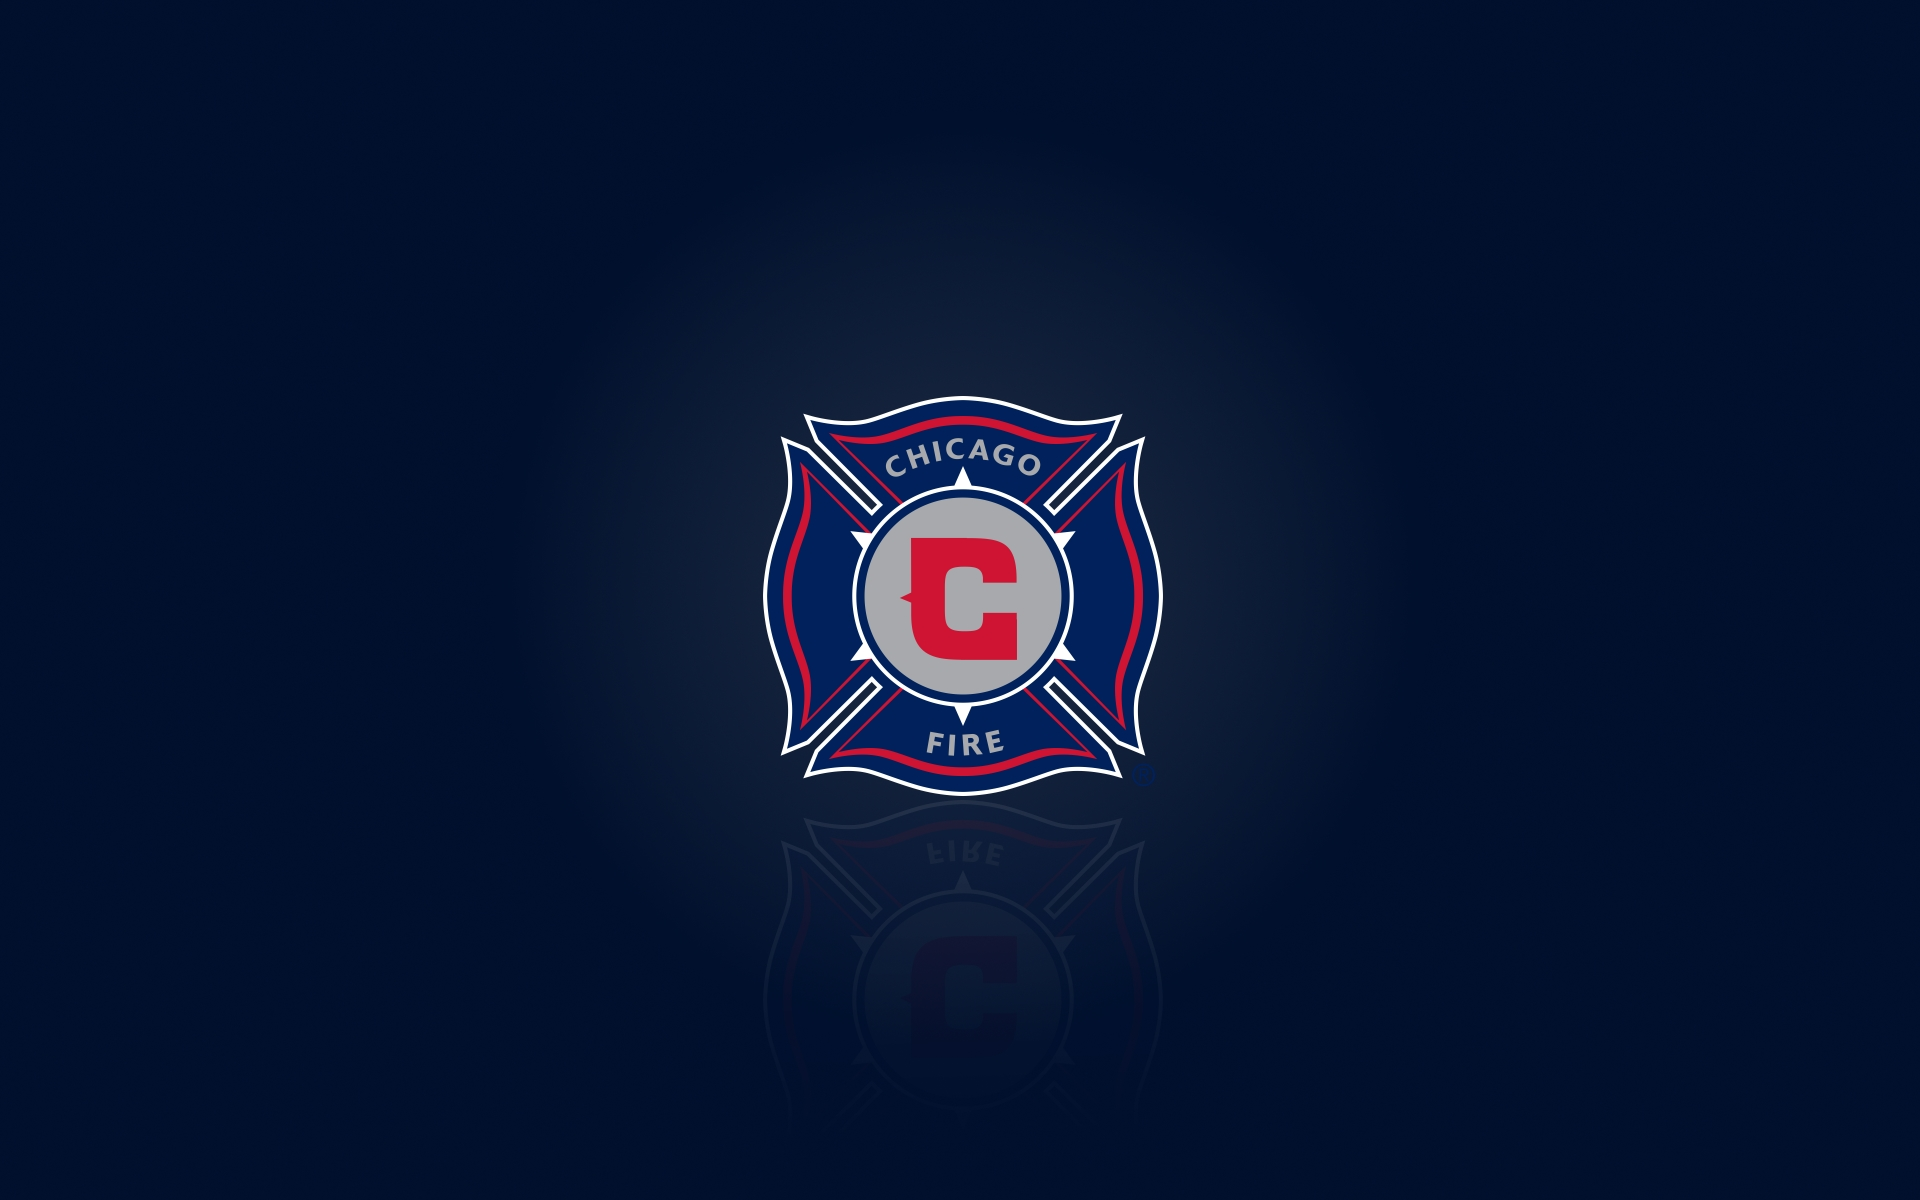 Chicago Fire Logos Download